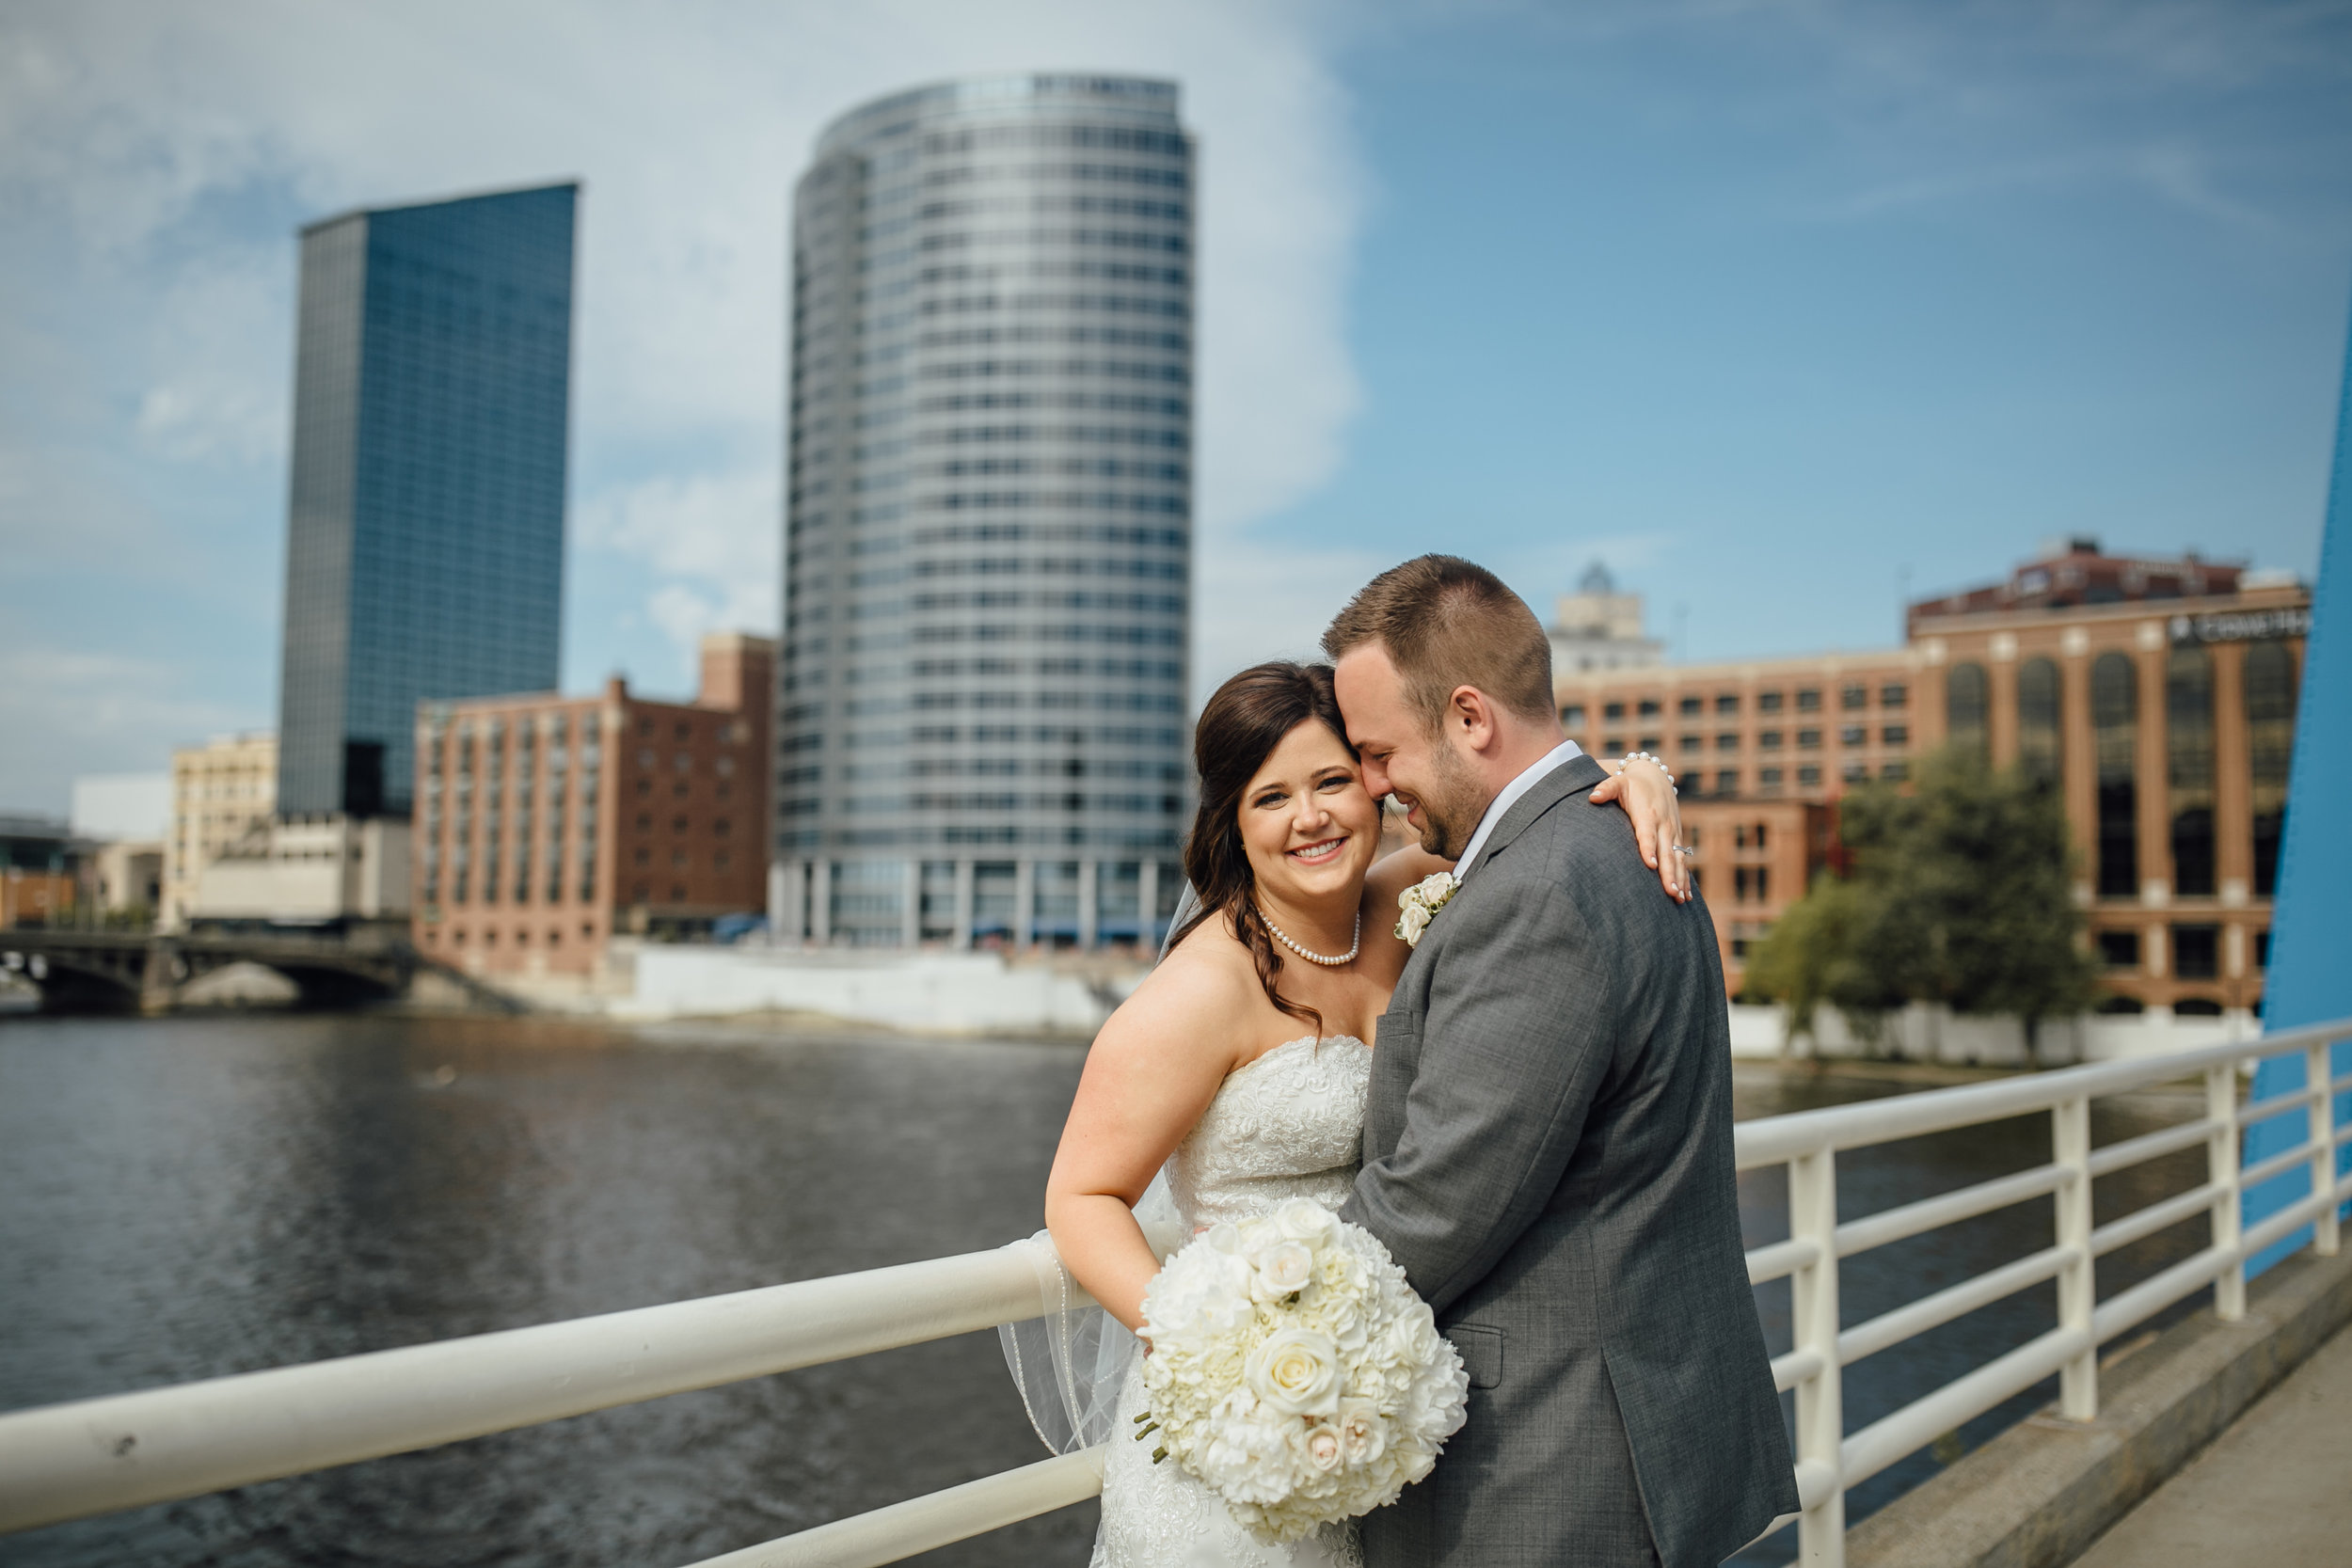 2018-5-Kelly-Jake-Portraits-Grand-Rapids-Wedding-Michigan-Wedding-Photographer-436.jpg